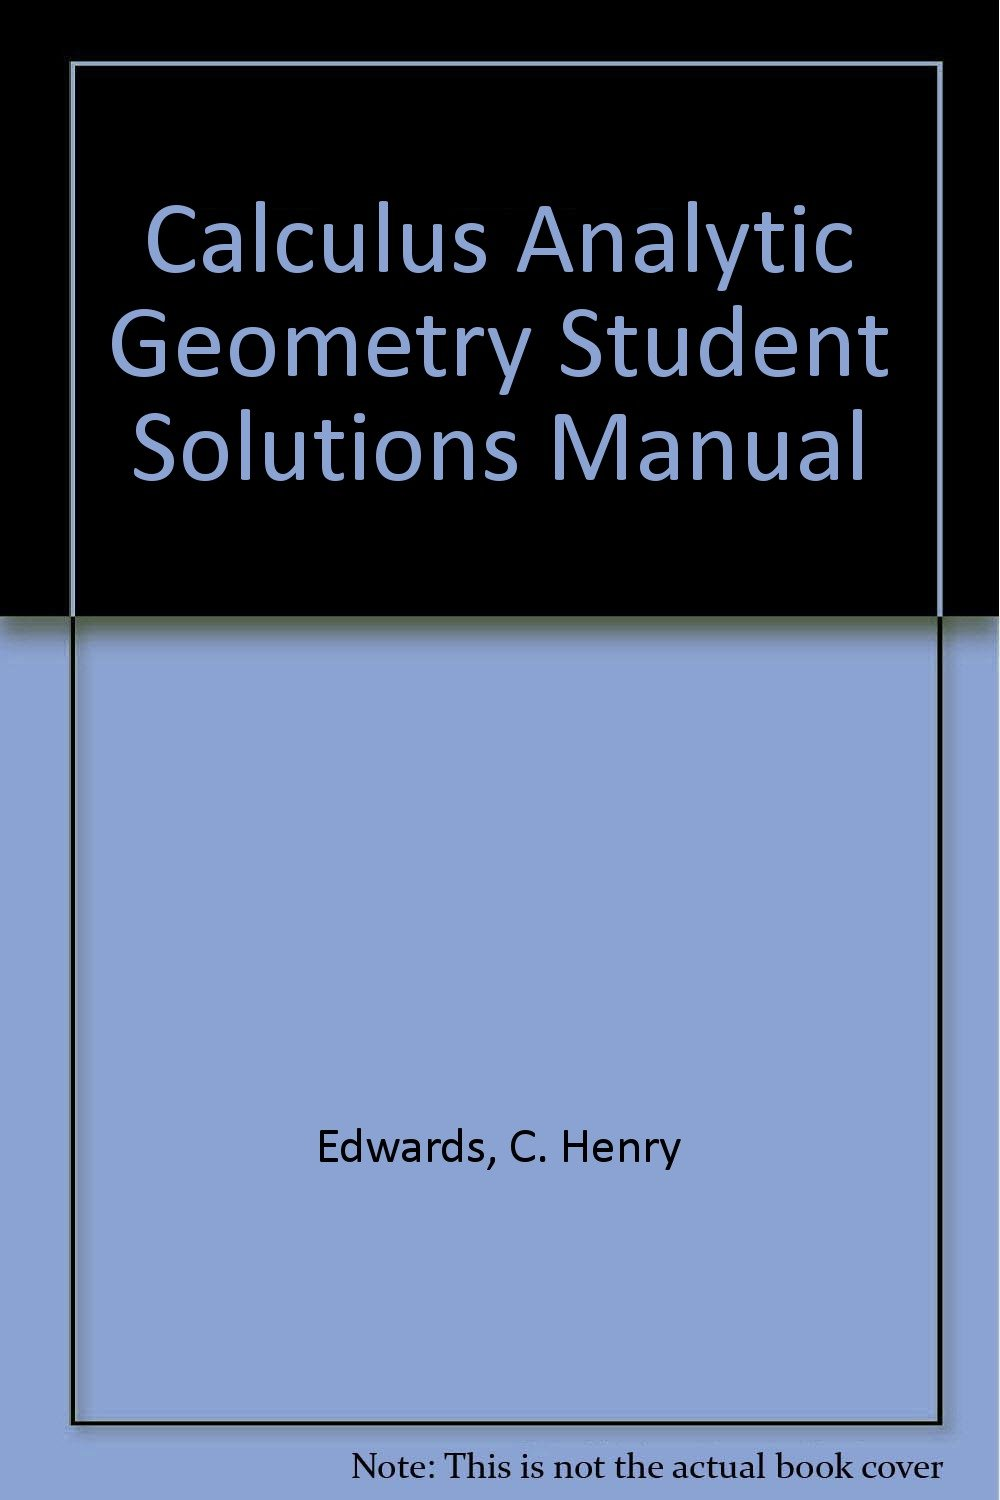 Calculus Analytic Geometry Student Solutions Manual: C. Henry Edwards:  9780130798756: Amazon.com: Books